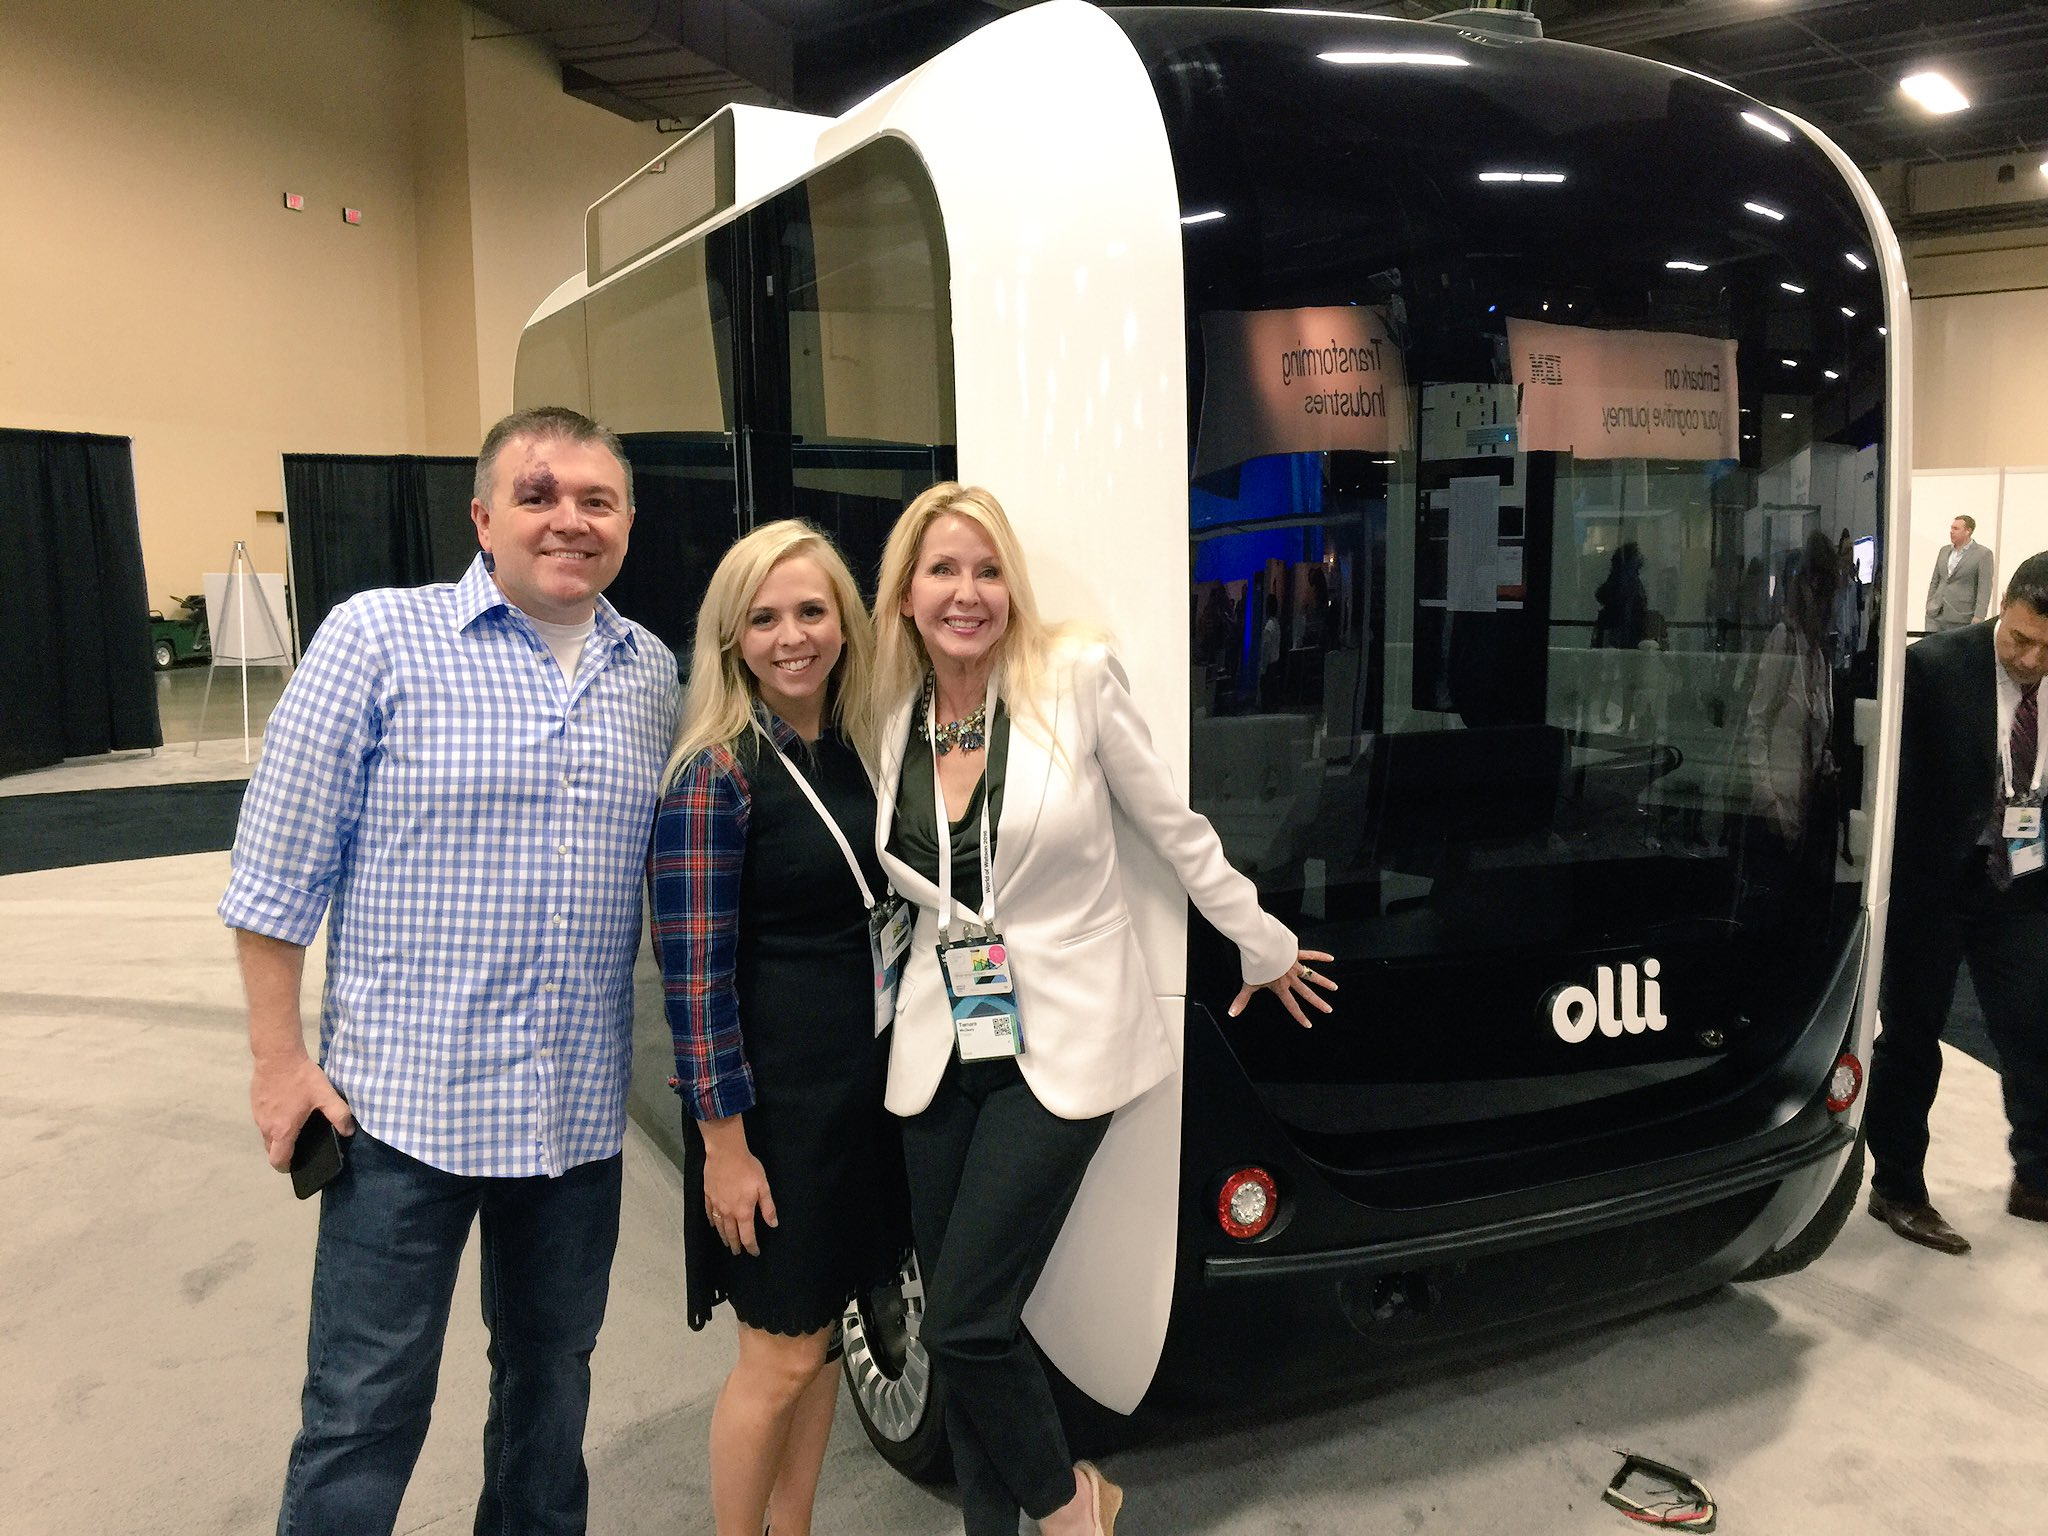 How cool is the #Olli powered by #Watson?! Made by @localmotors, I will be talking about it tomorrow in my #IoT keynote. #ibmwow https://t.co/qNYidiRMKI